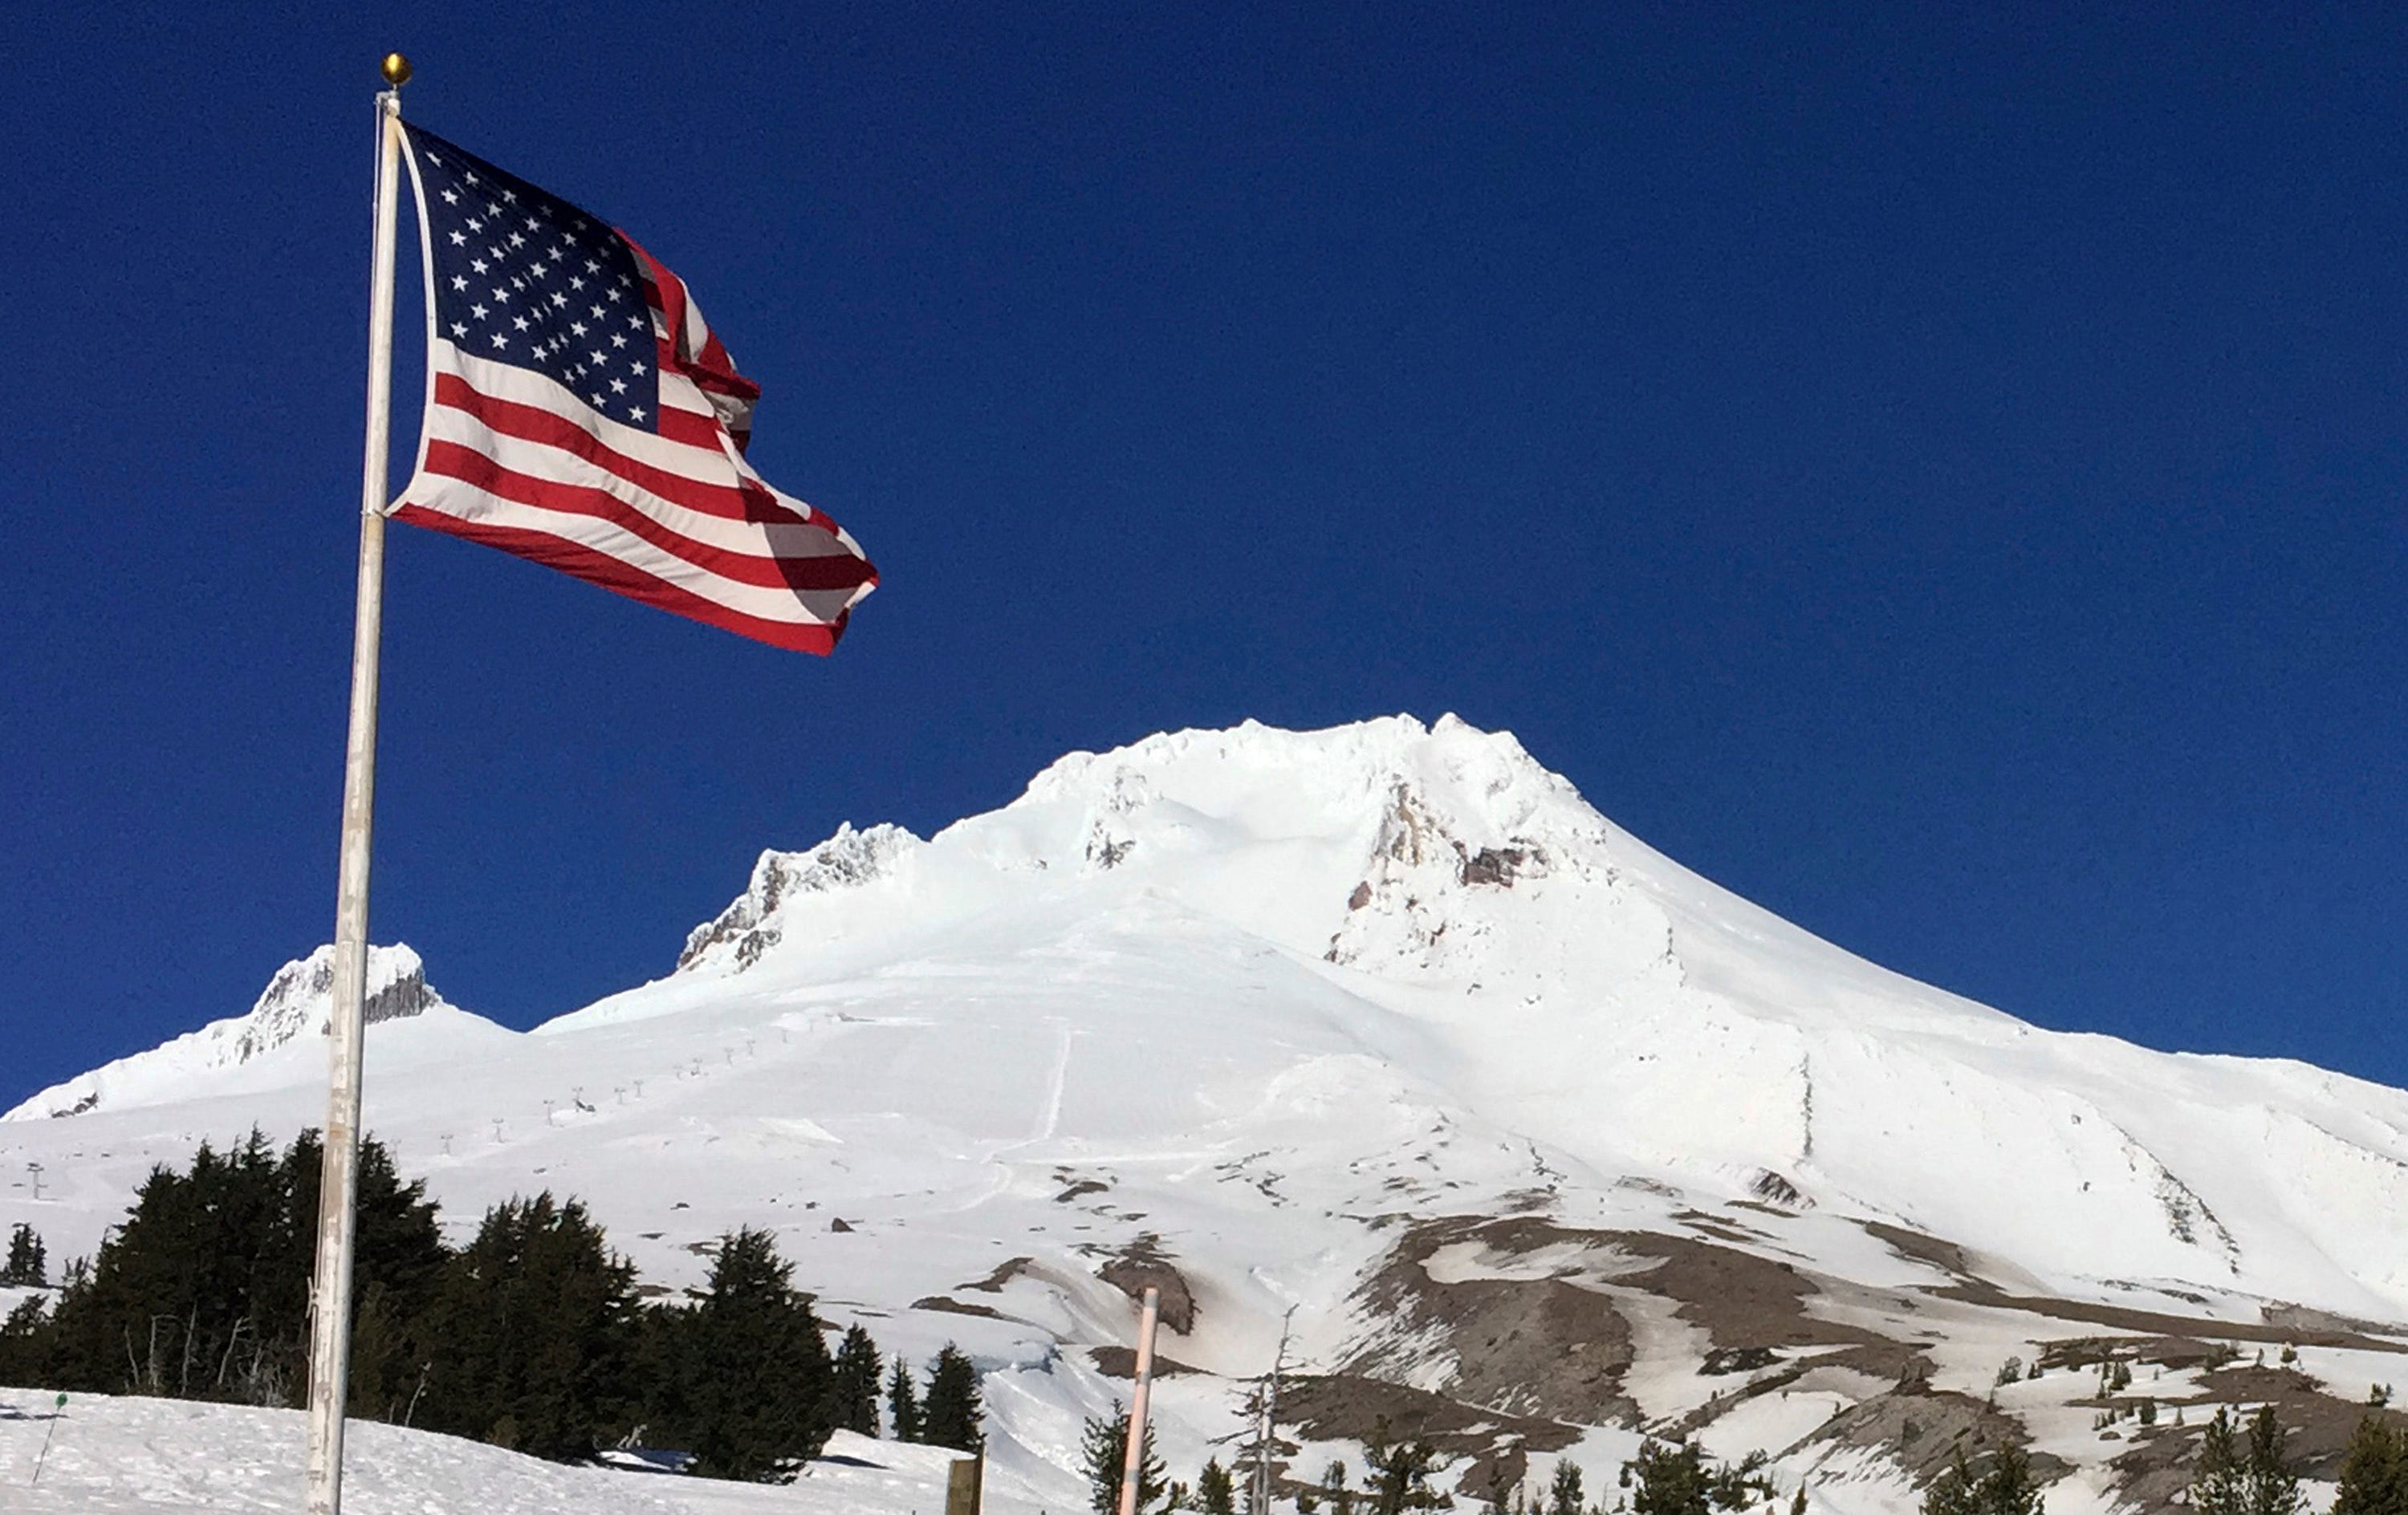 Climber dies after fall on Mount Hood; more climbers stranded on Oregon peak